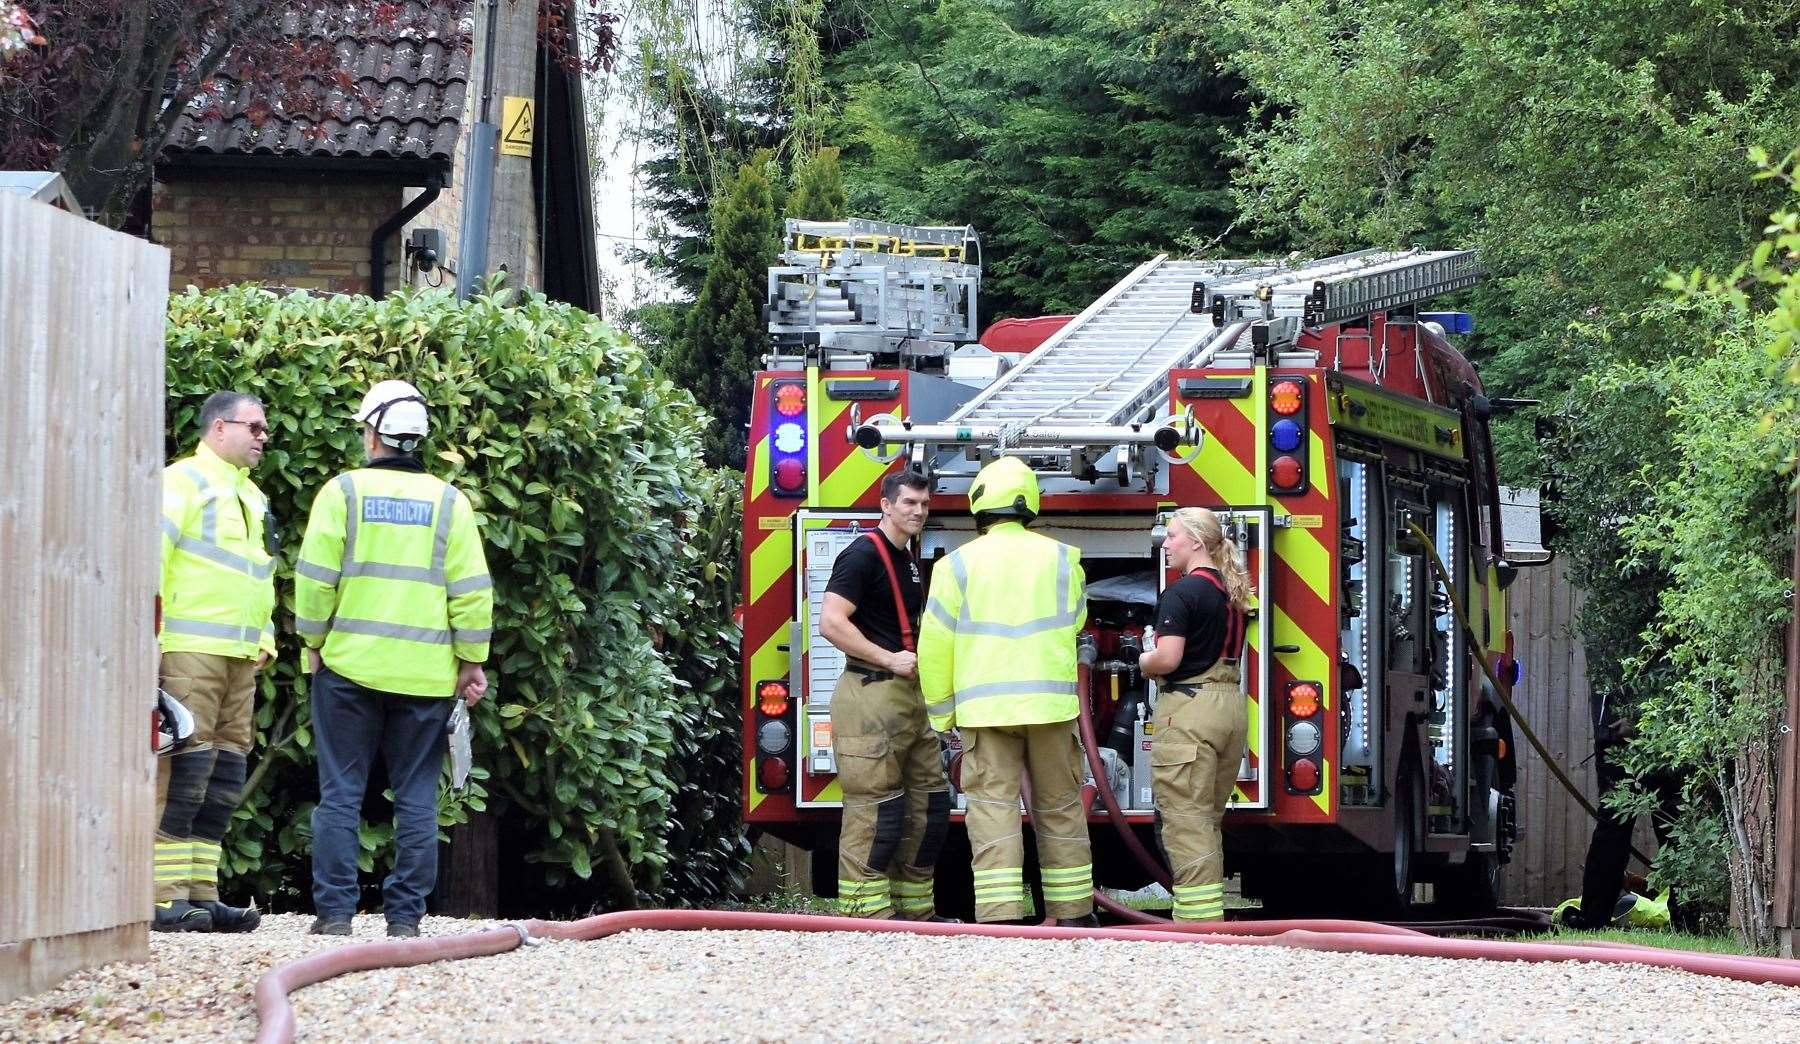 Emergency crews at scene of suspected gas explosion in Lidgate (9806411)